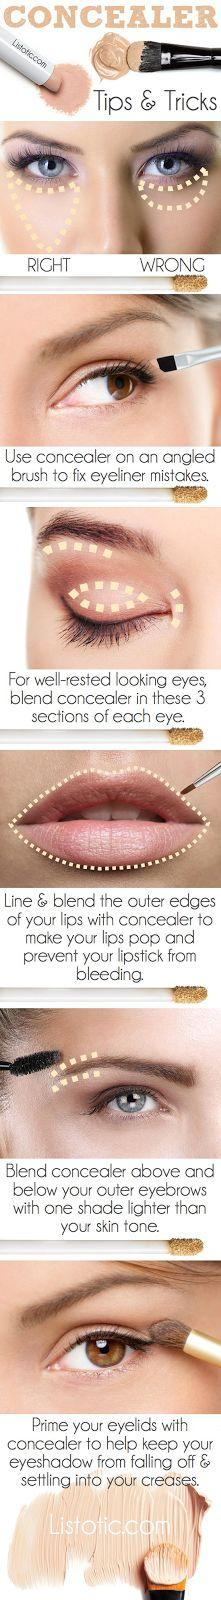 Свадьба - 20 Beauty Mistakes You Didn't Know You Were Making